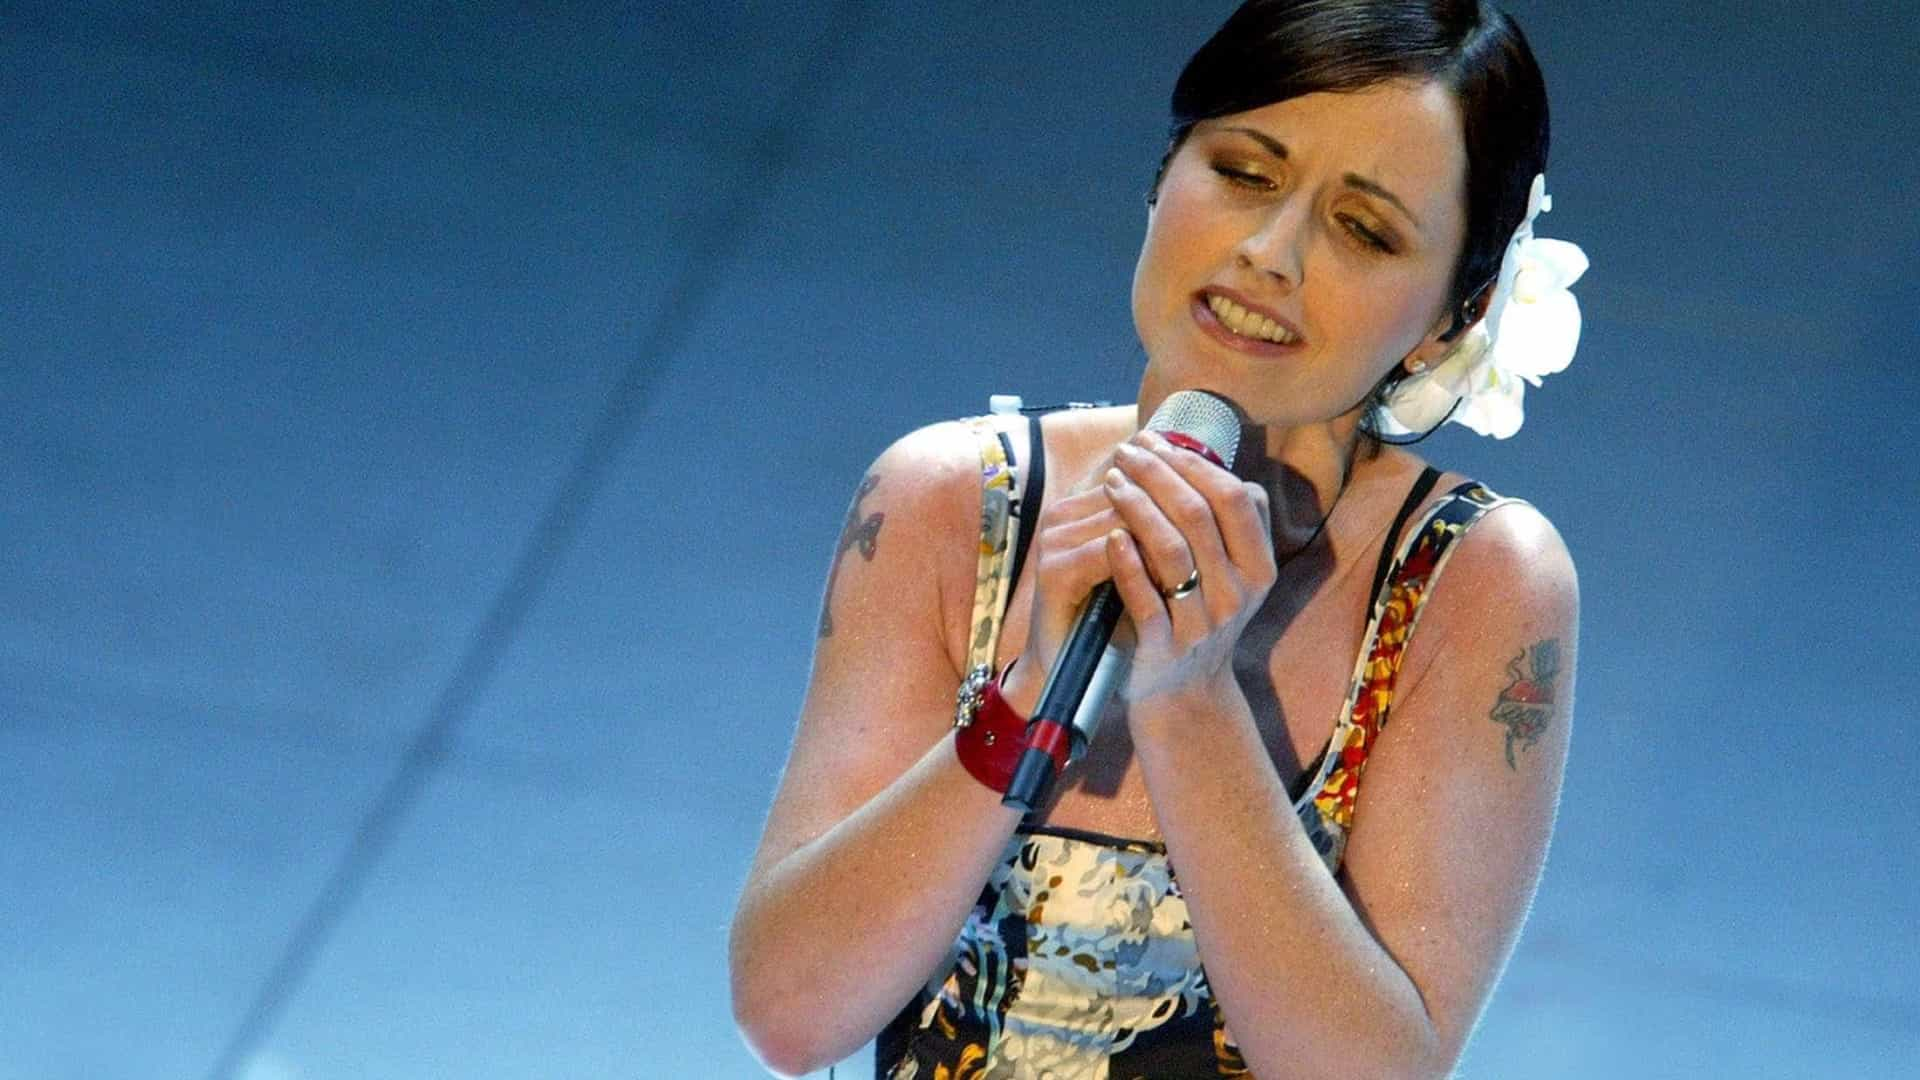 Morreu a vocalista dos The Cranberries